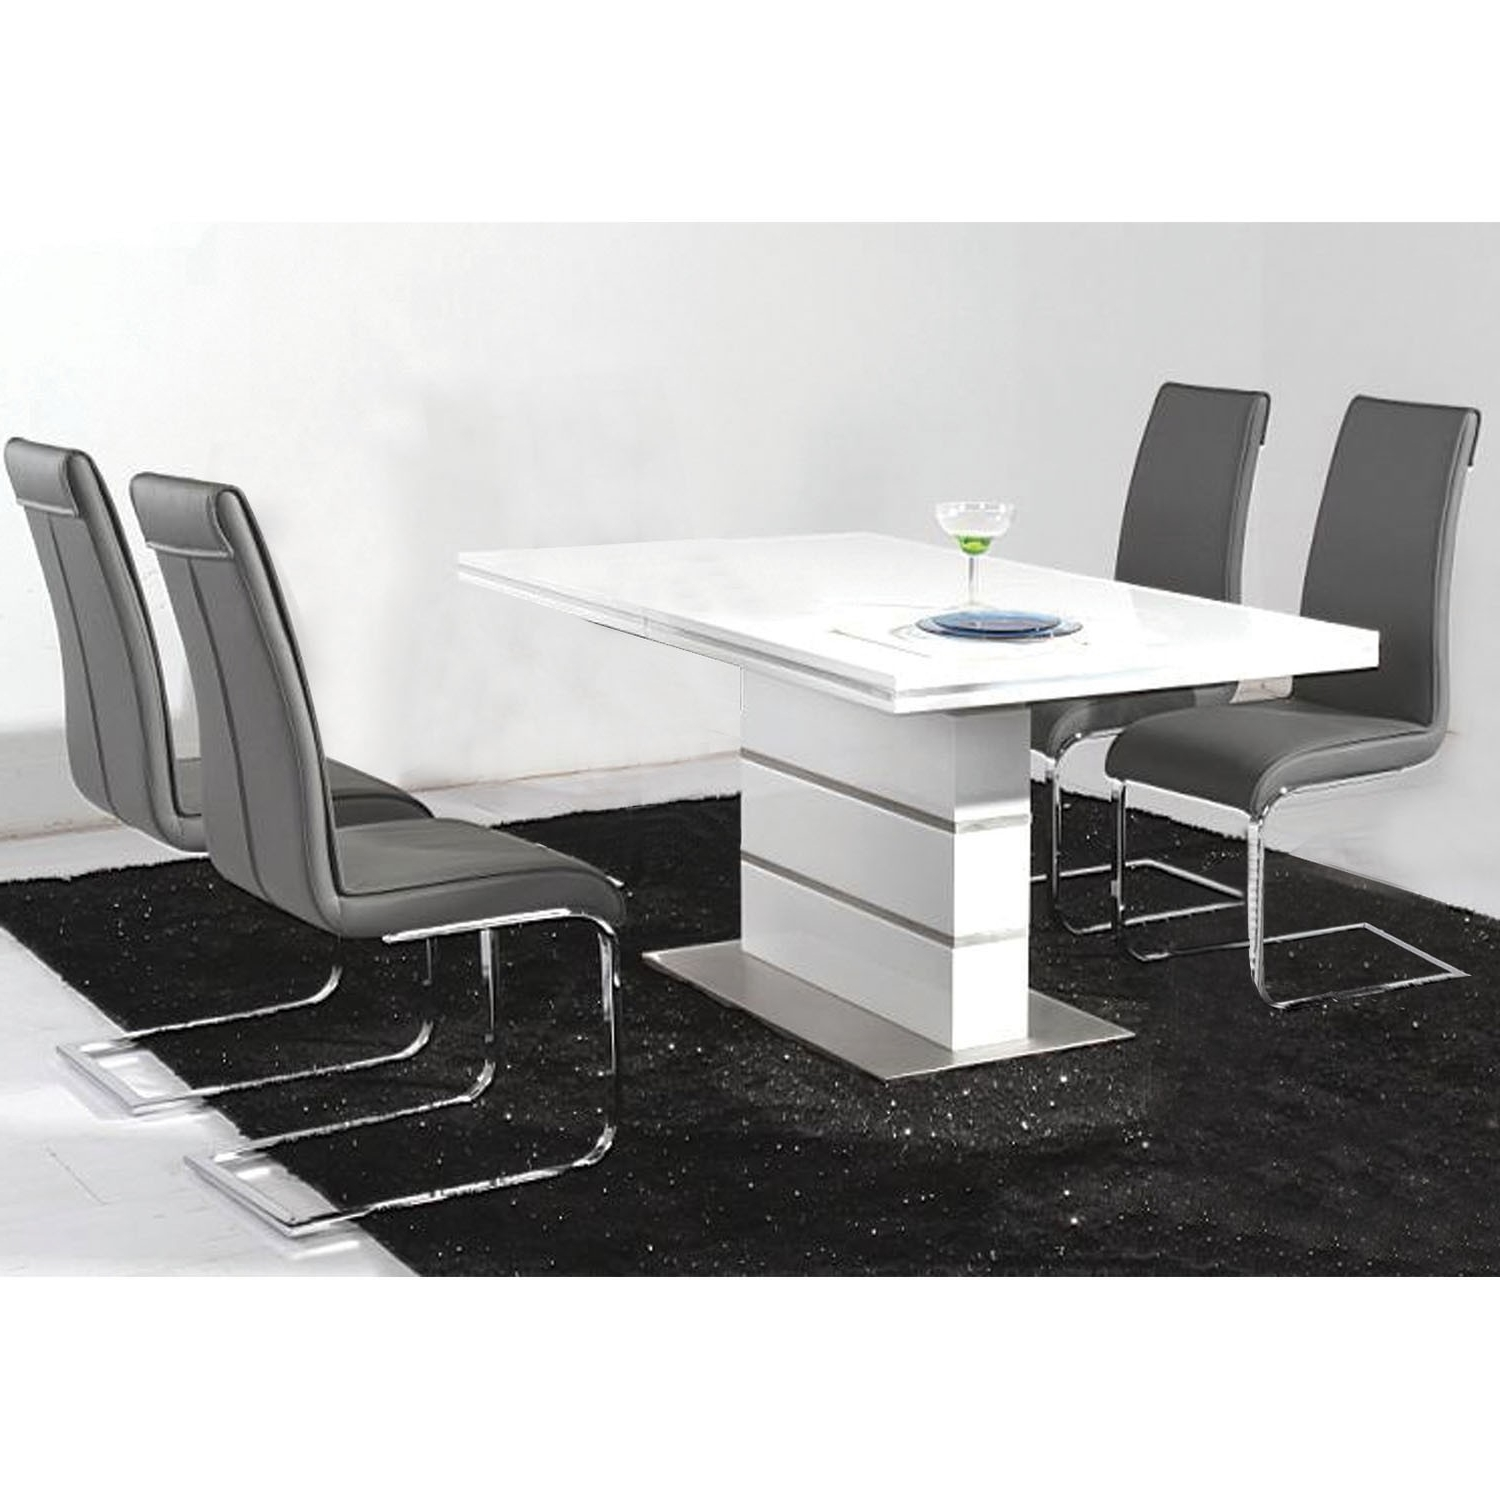 Fashionable White High Gloss Extending Dining Table Unique High Gloss Round Within White Gloss Round Extending Dining Tables (View 7 of 25)